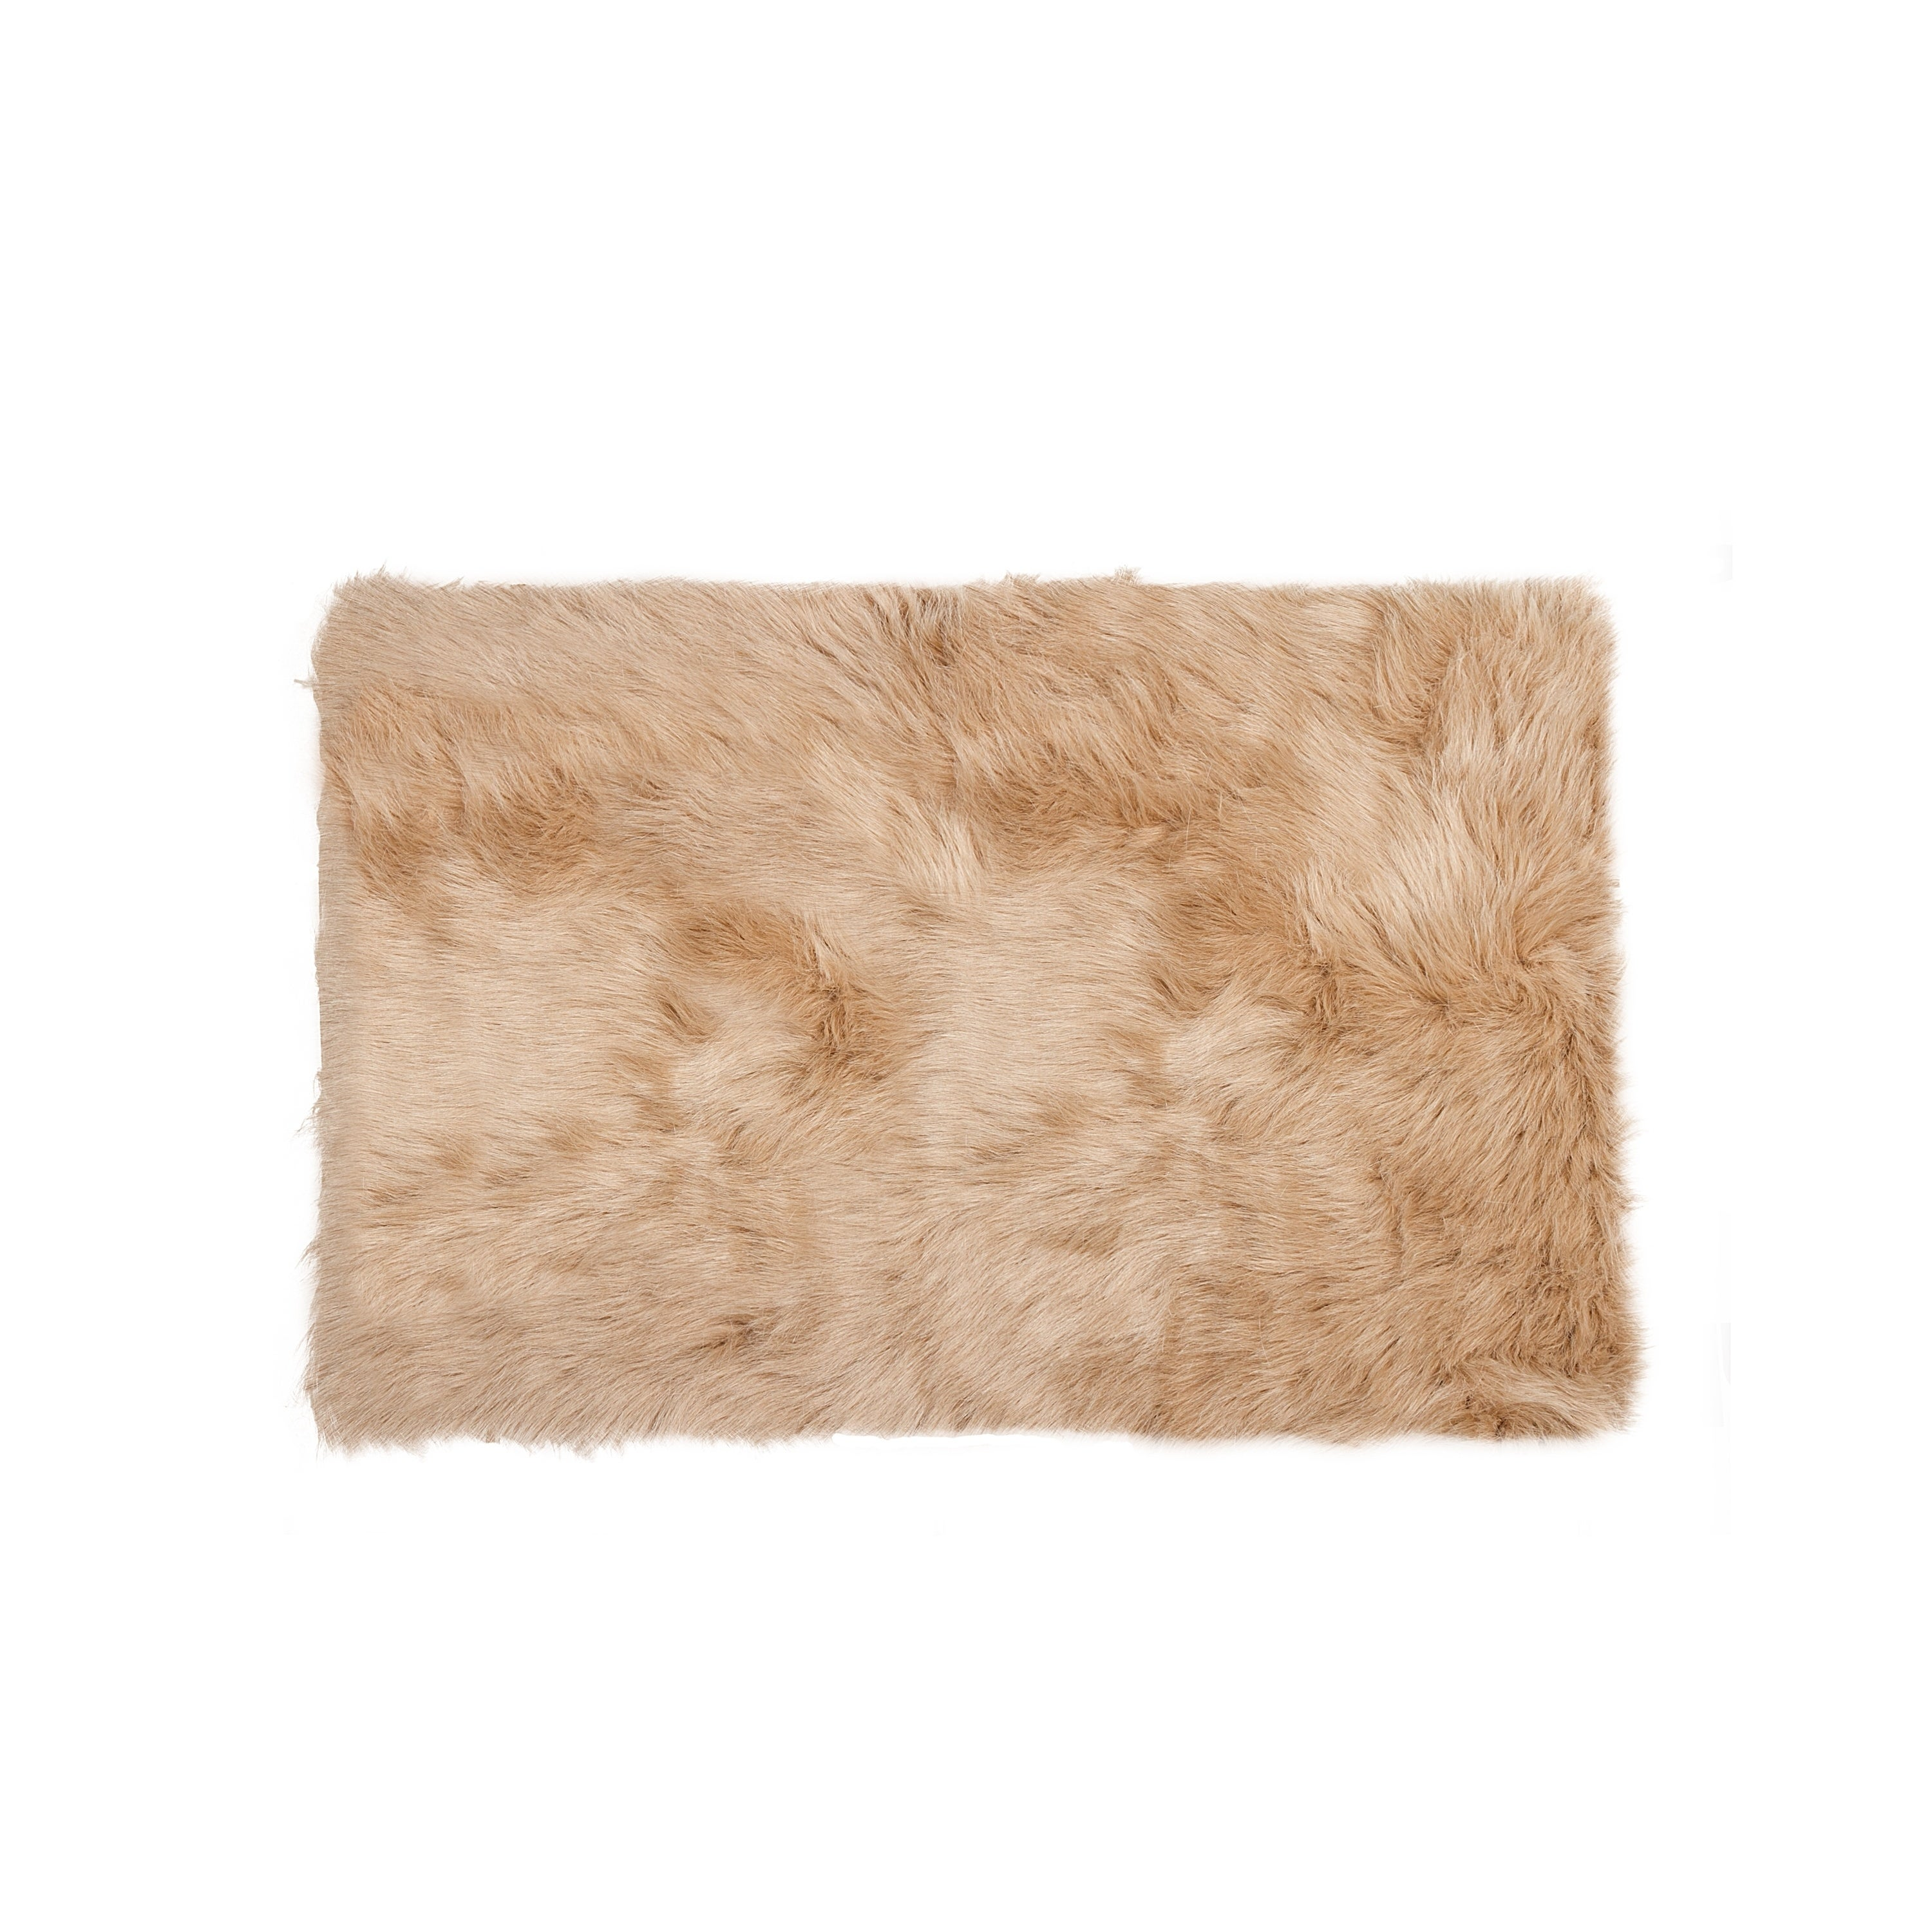 Luxe Hudson Tan Faux Sheepskin Rug Throw 2 X 3 Free Shipping On Orders Over 45 12222924